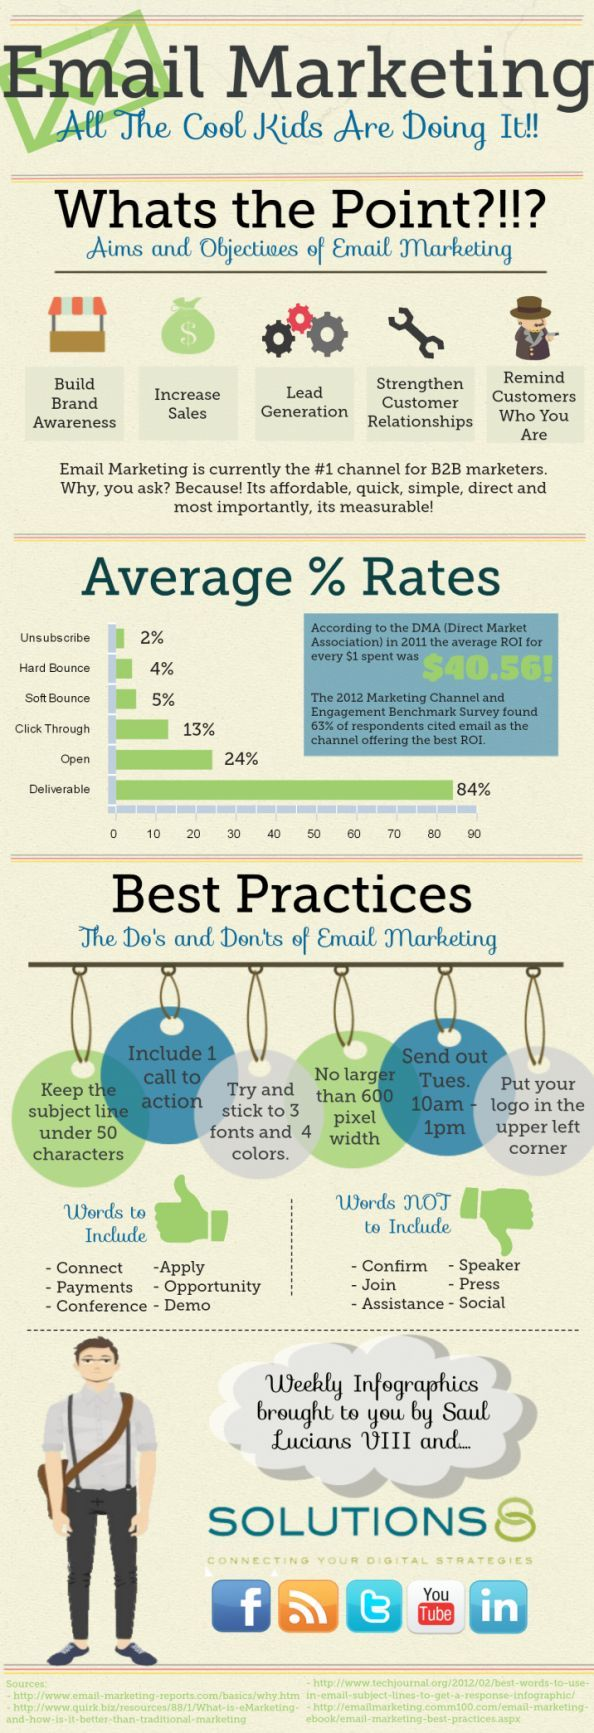 Why is Email Marketing so Important? Infographic #recruitment #newzealand